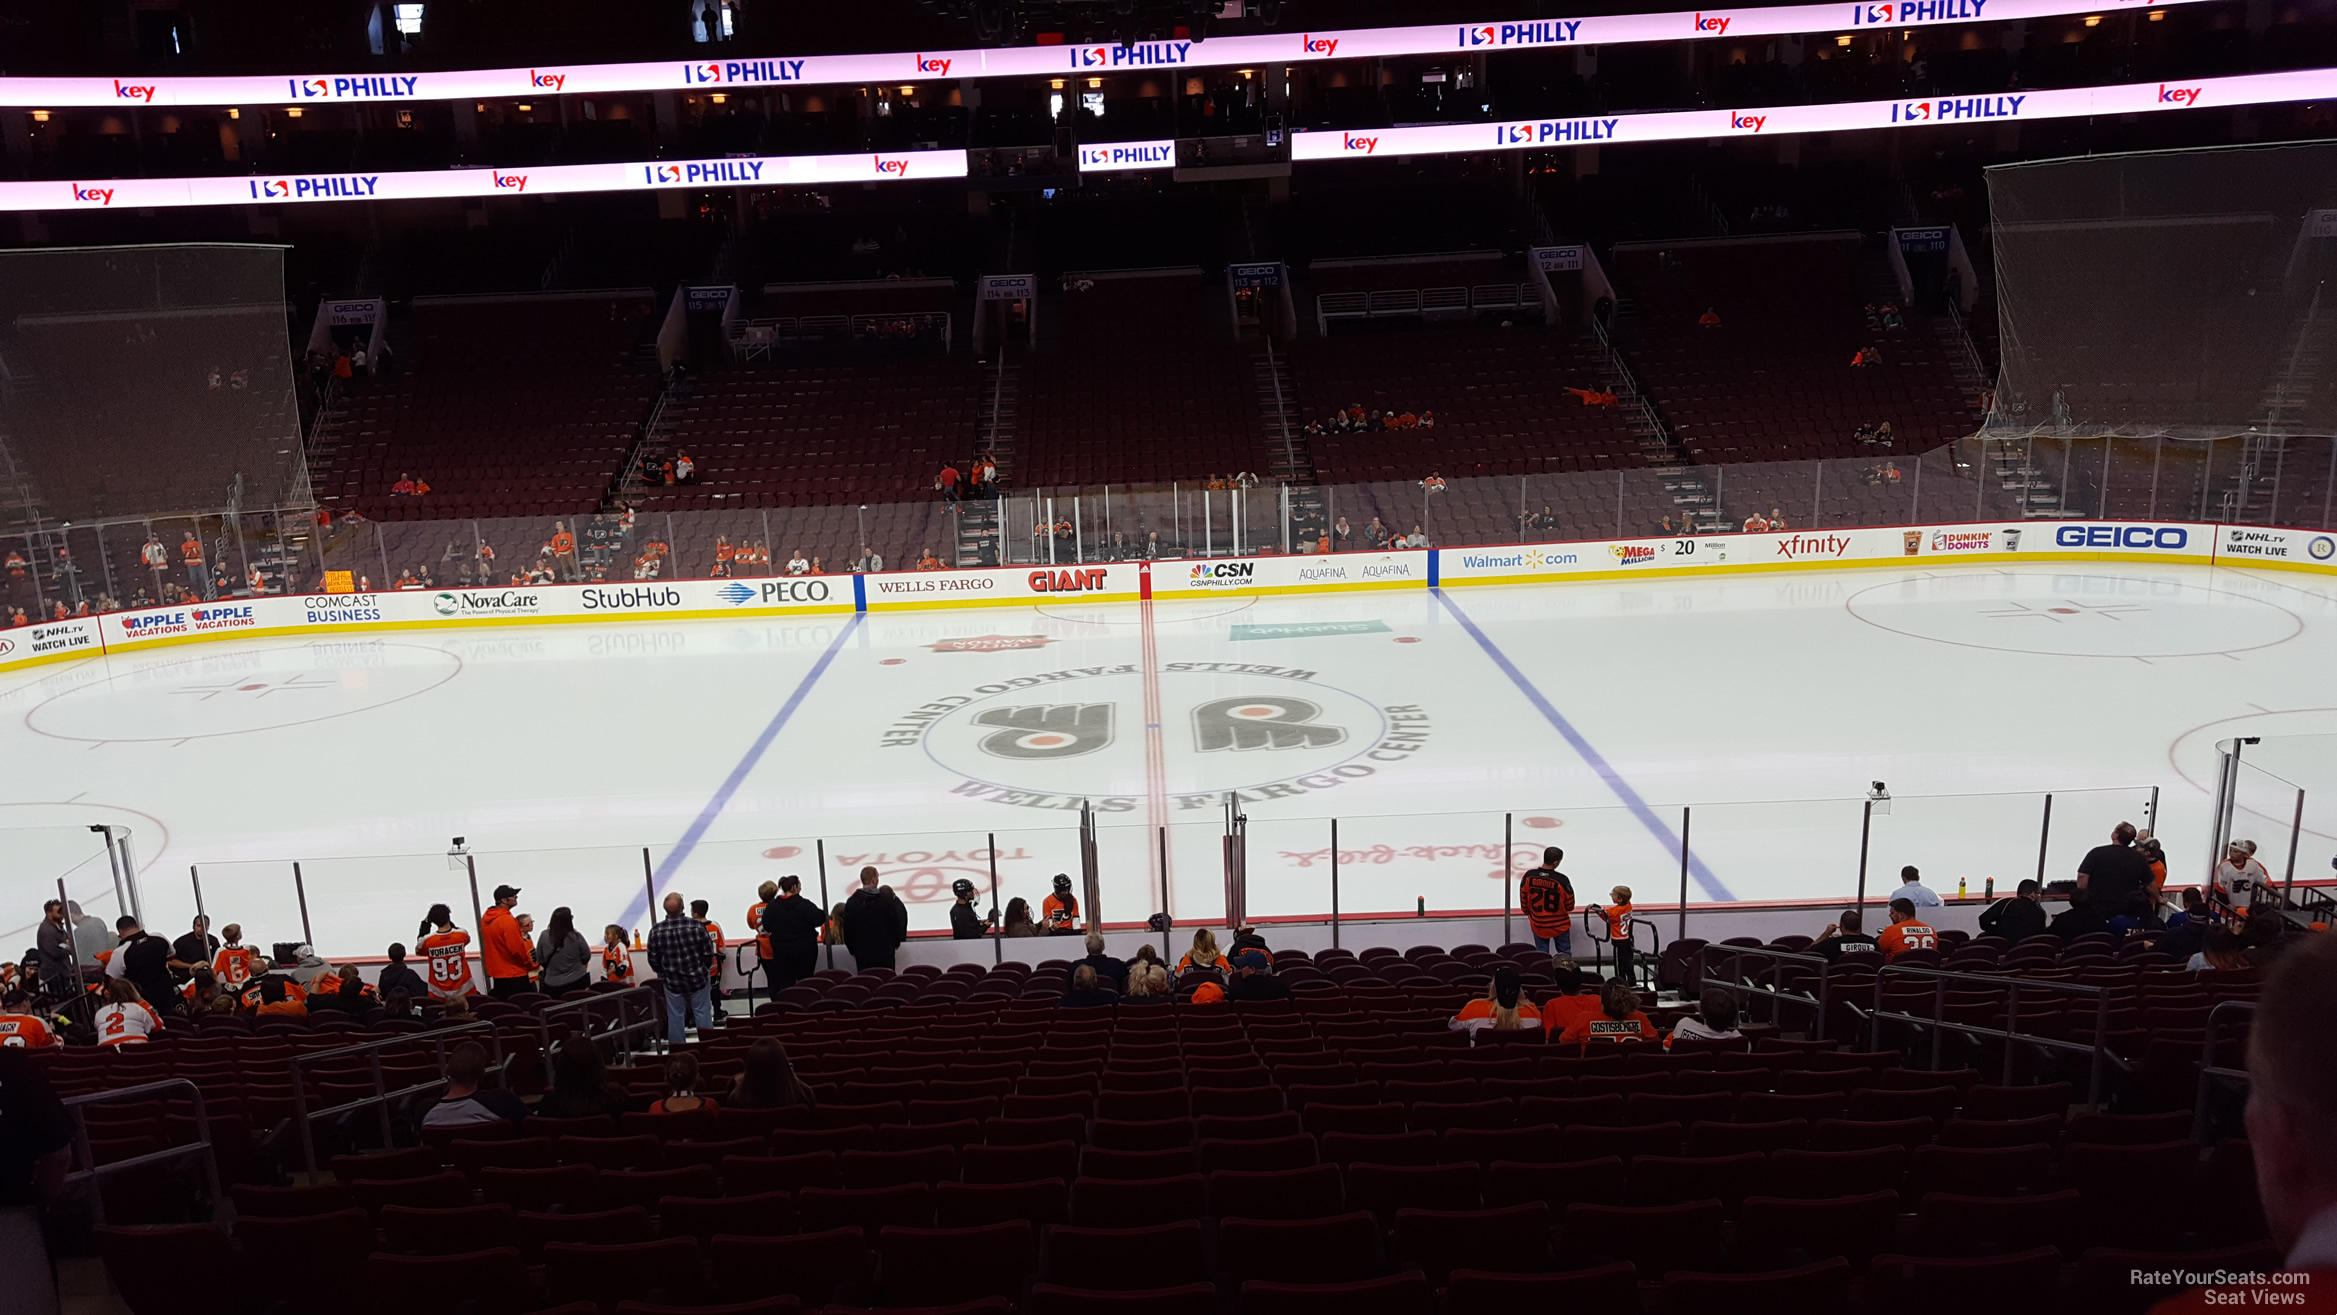 Philadelphia Flyers Seat View for Wells Fargo Center Super Box 1